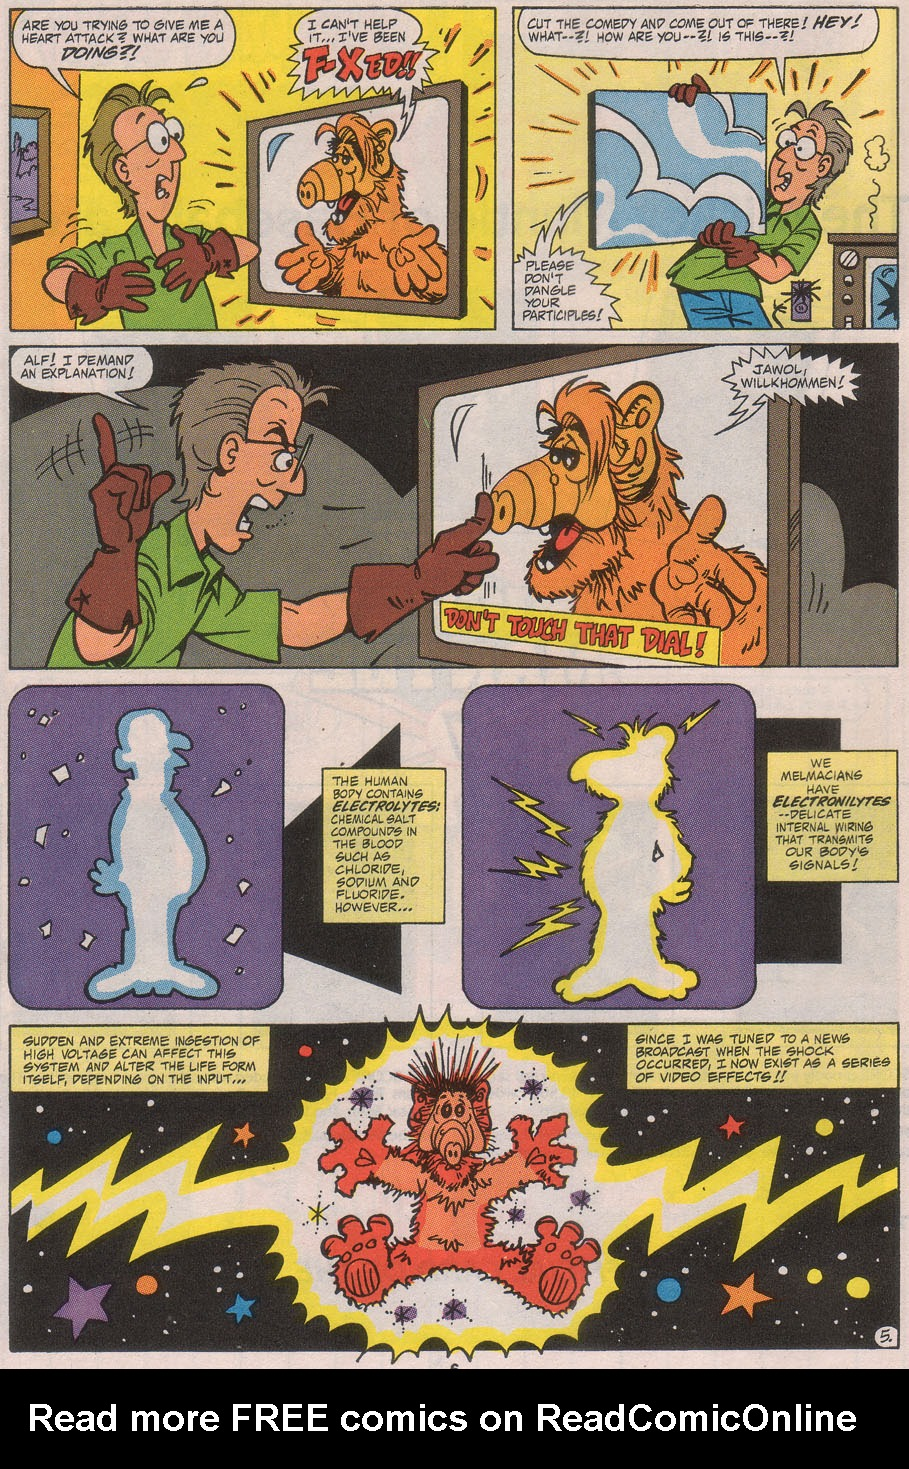 Read online ALF comic -  Issue #41 - 8